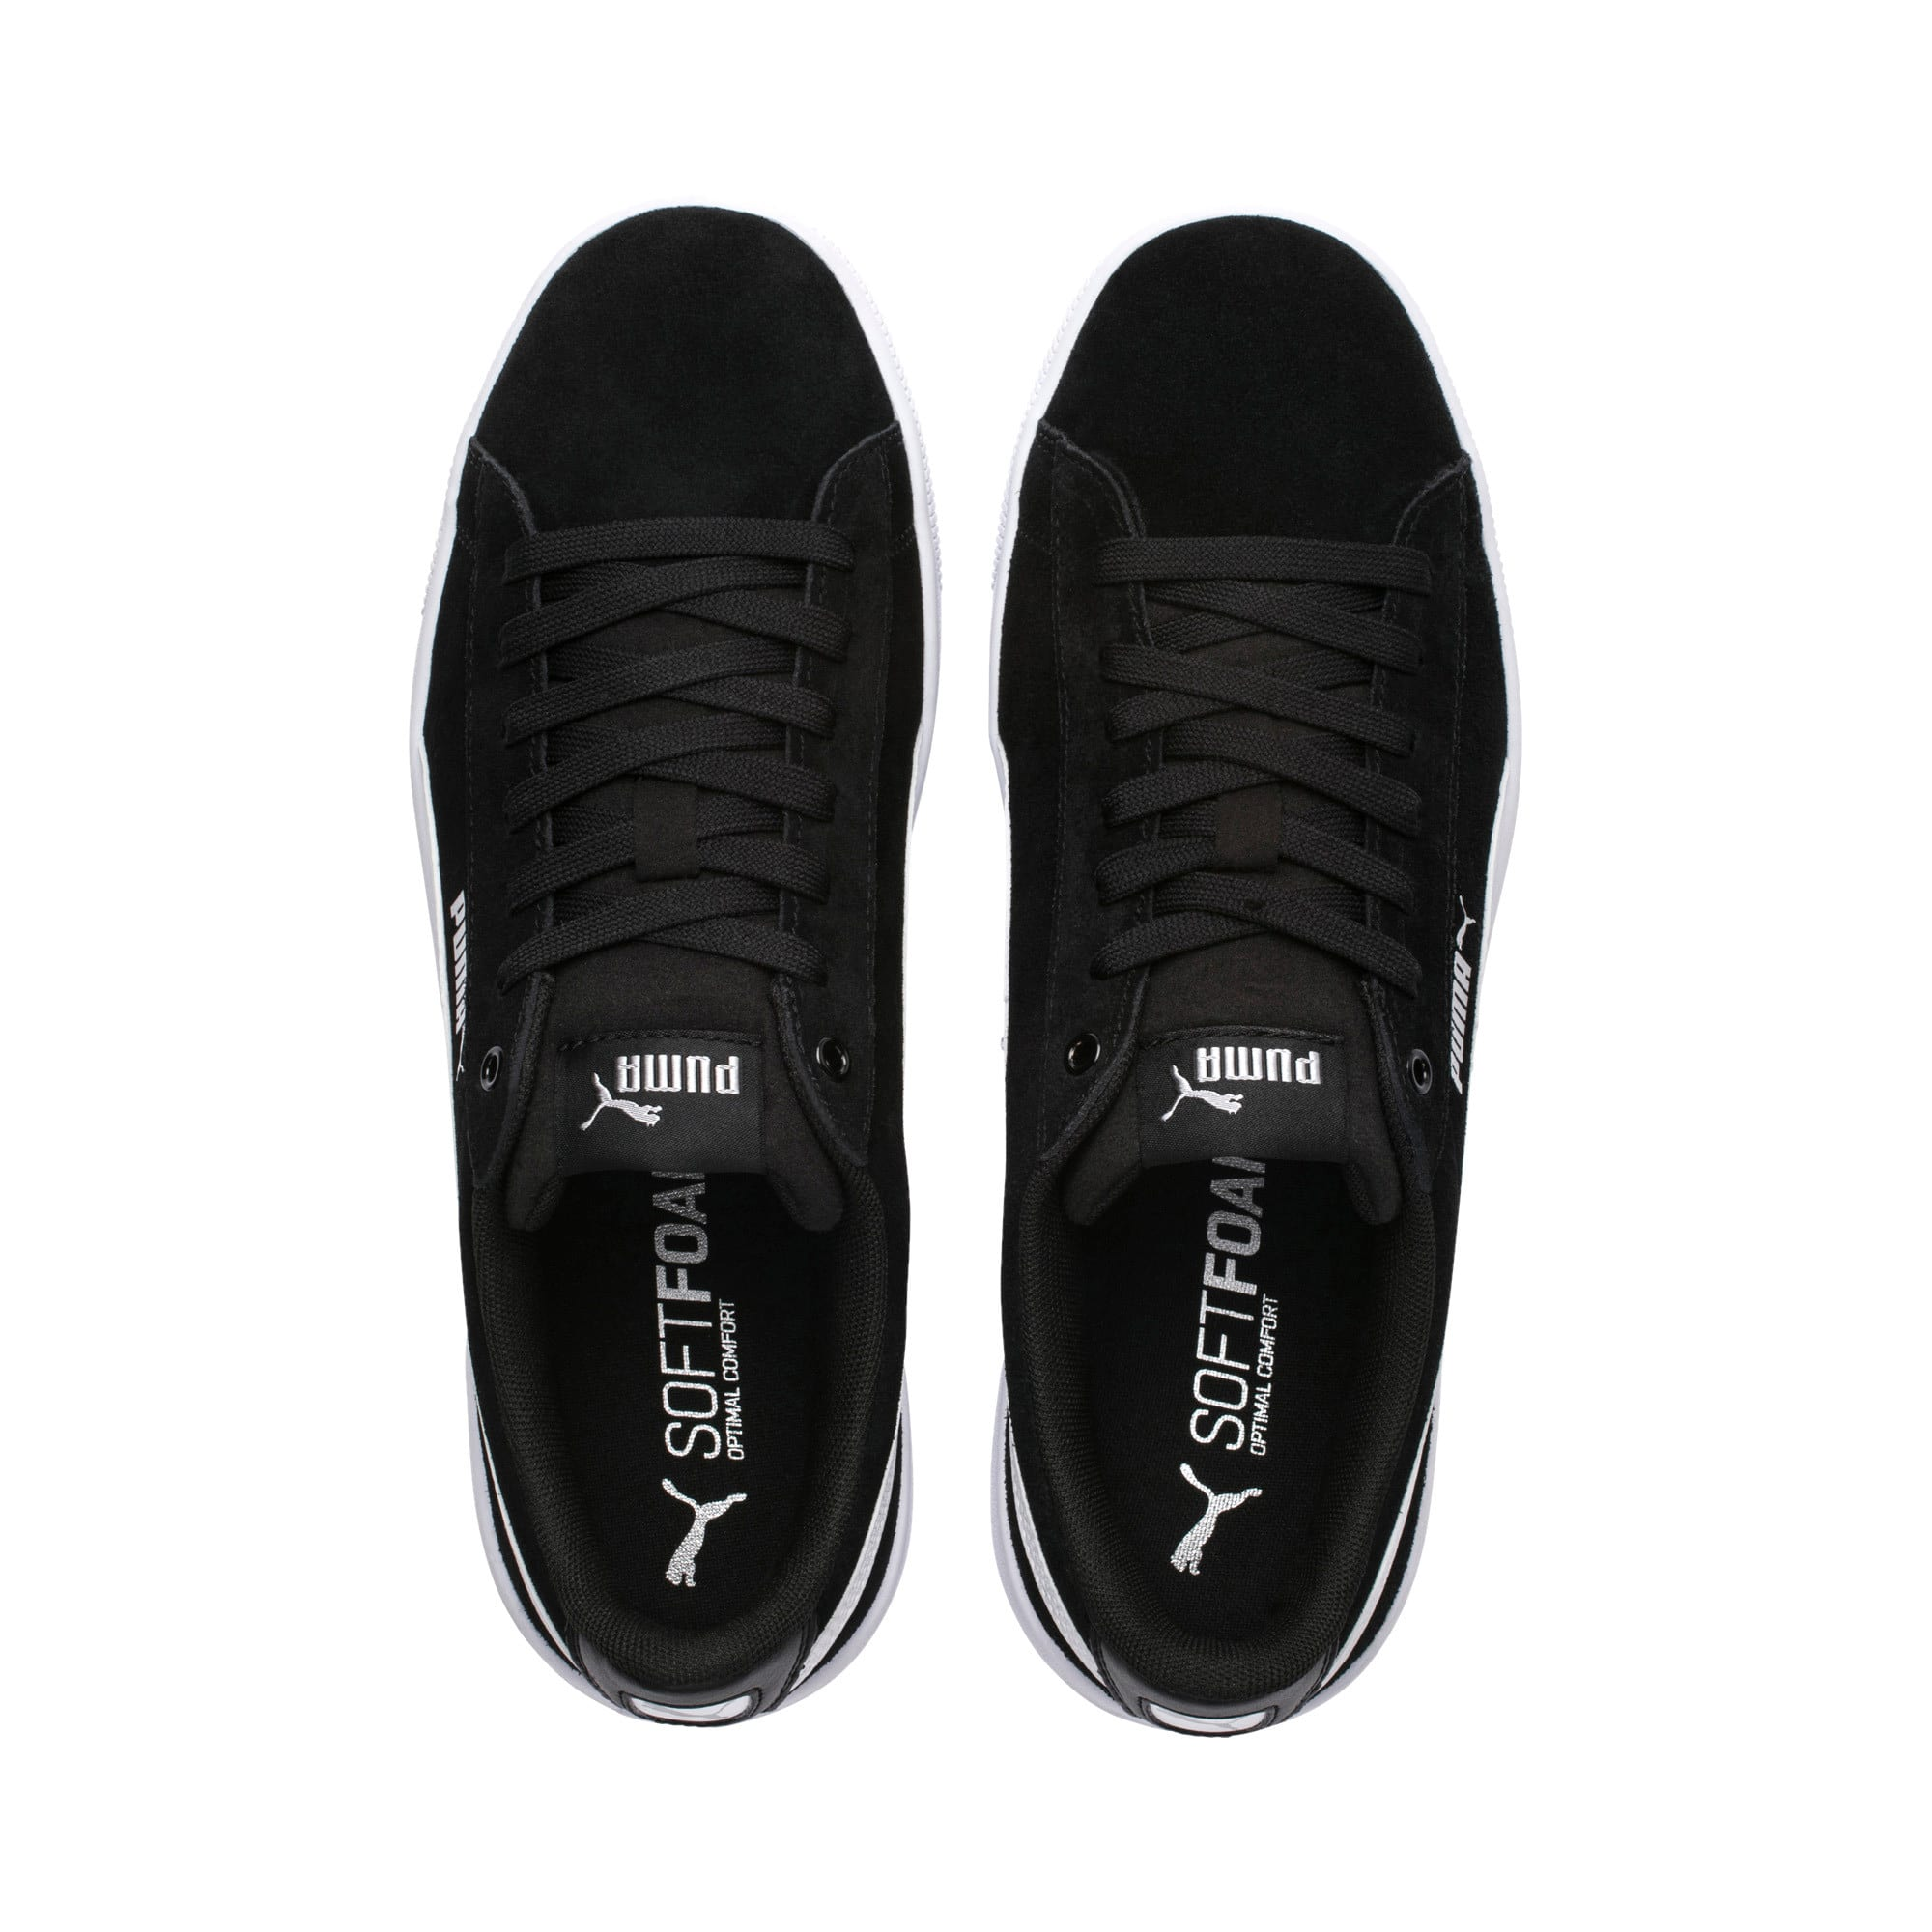 Thumbnail 6 of PUMA Vikky v2 Women's Sneakers, Puma Black-Puma White-Silver, medium